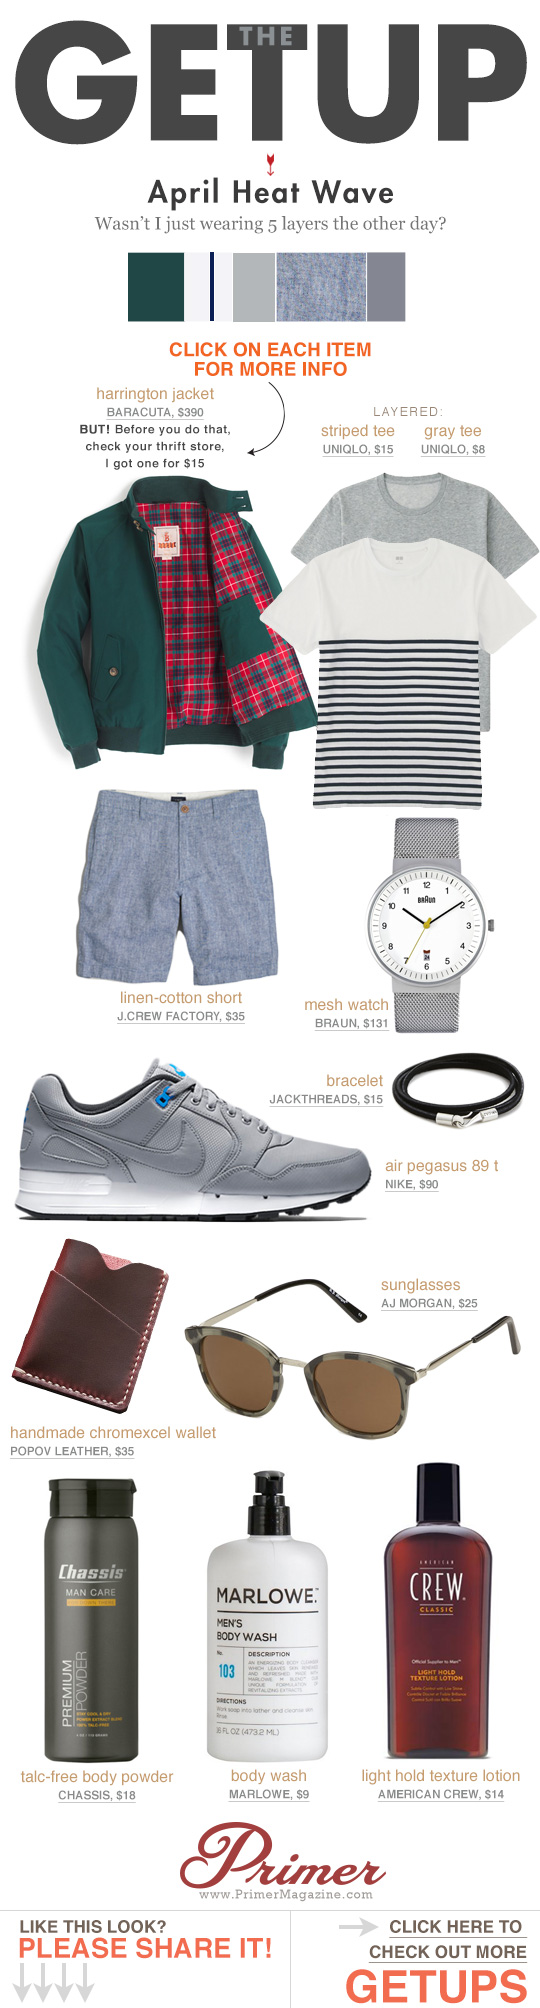 The Getup - April Heat Waves - summer outfit inspiration featuring green jacket, striped shirt, and sneakers